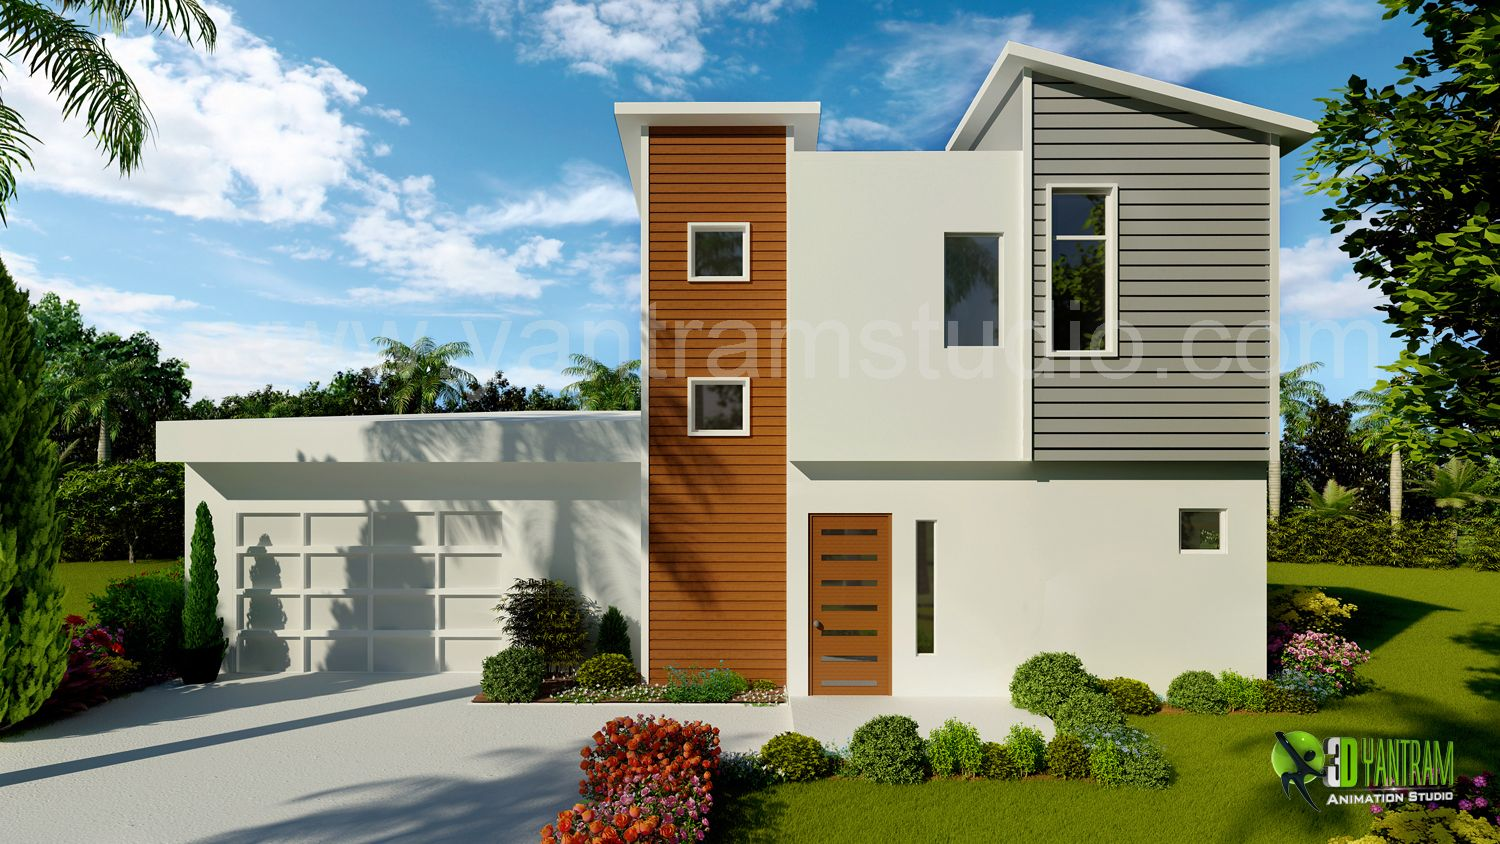 Exterior Rendering Model Decoration Beauteous Design Decoration